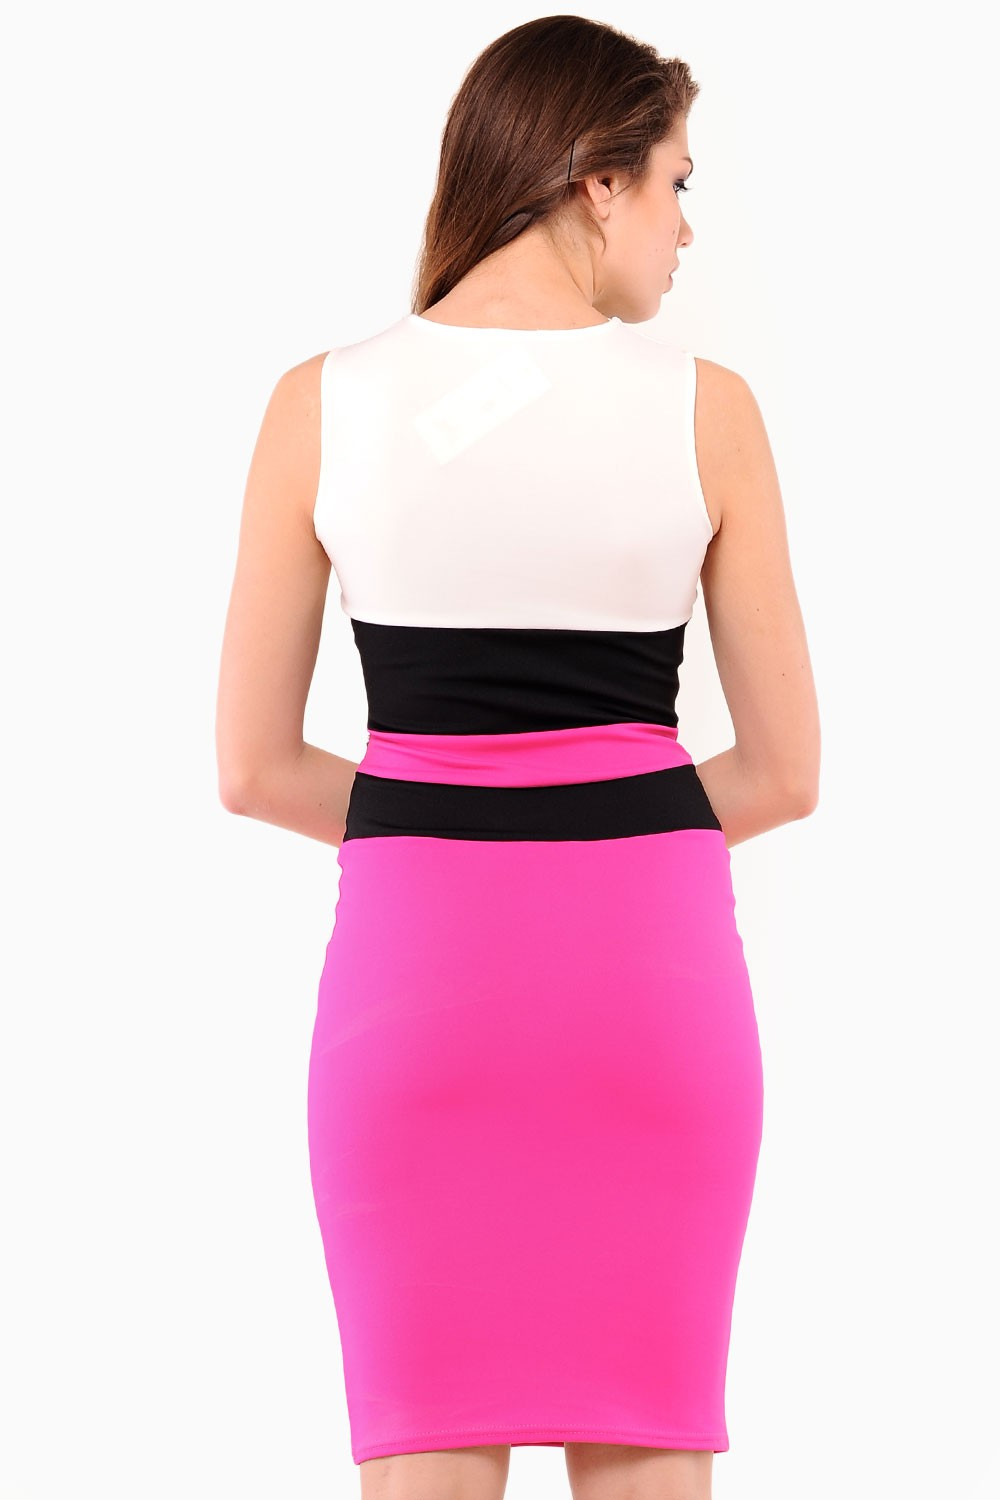 tori colour block midi dress in pink iclothing. Black Bedroom Furniture Sets. Home Design Ideas